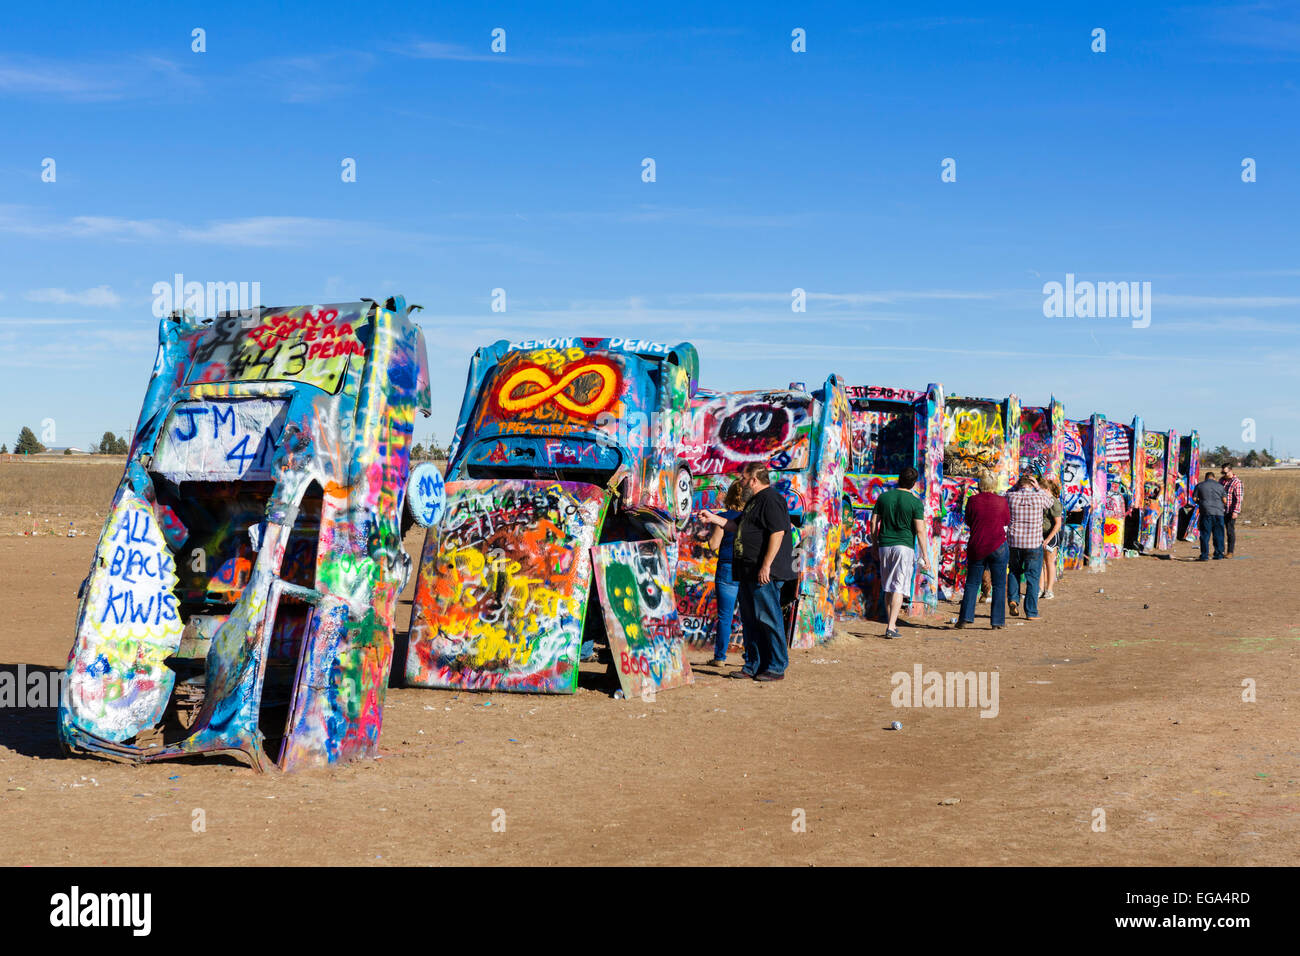 Cadillac Ranch, a public art installation just outside Amarillo,Texas, USA - Stock Image